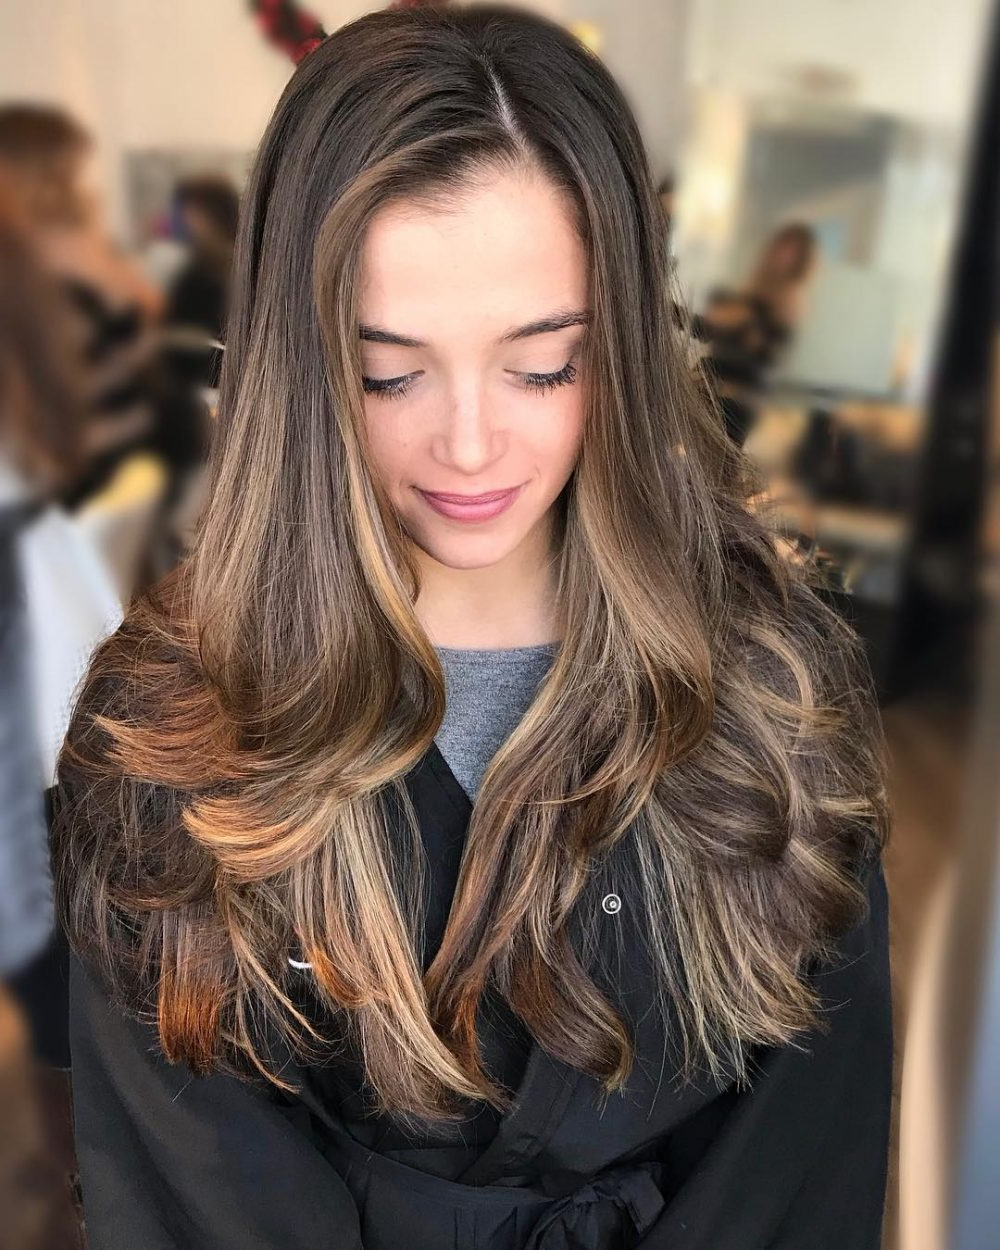 Most Popular Straight, Sleek, And Layered Hairstyles For Medium Hair For 29 Prettiest Hairstyles For Long Straight Hair In  (View 13 of 20)